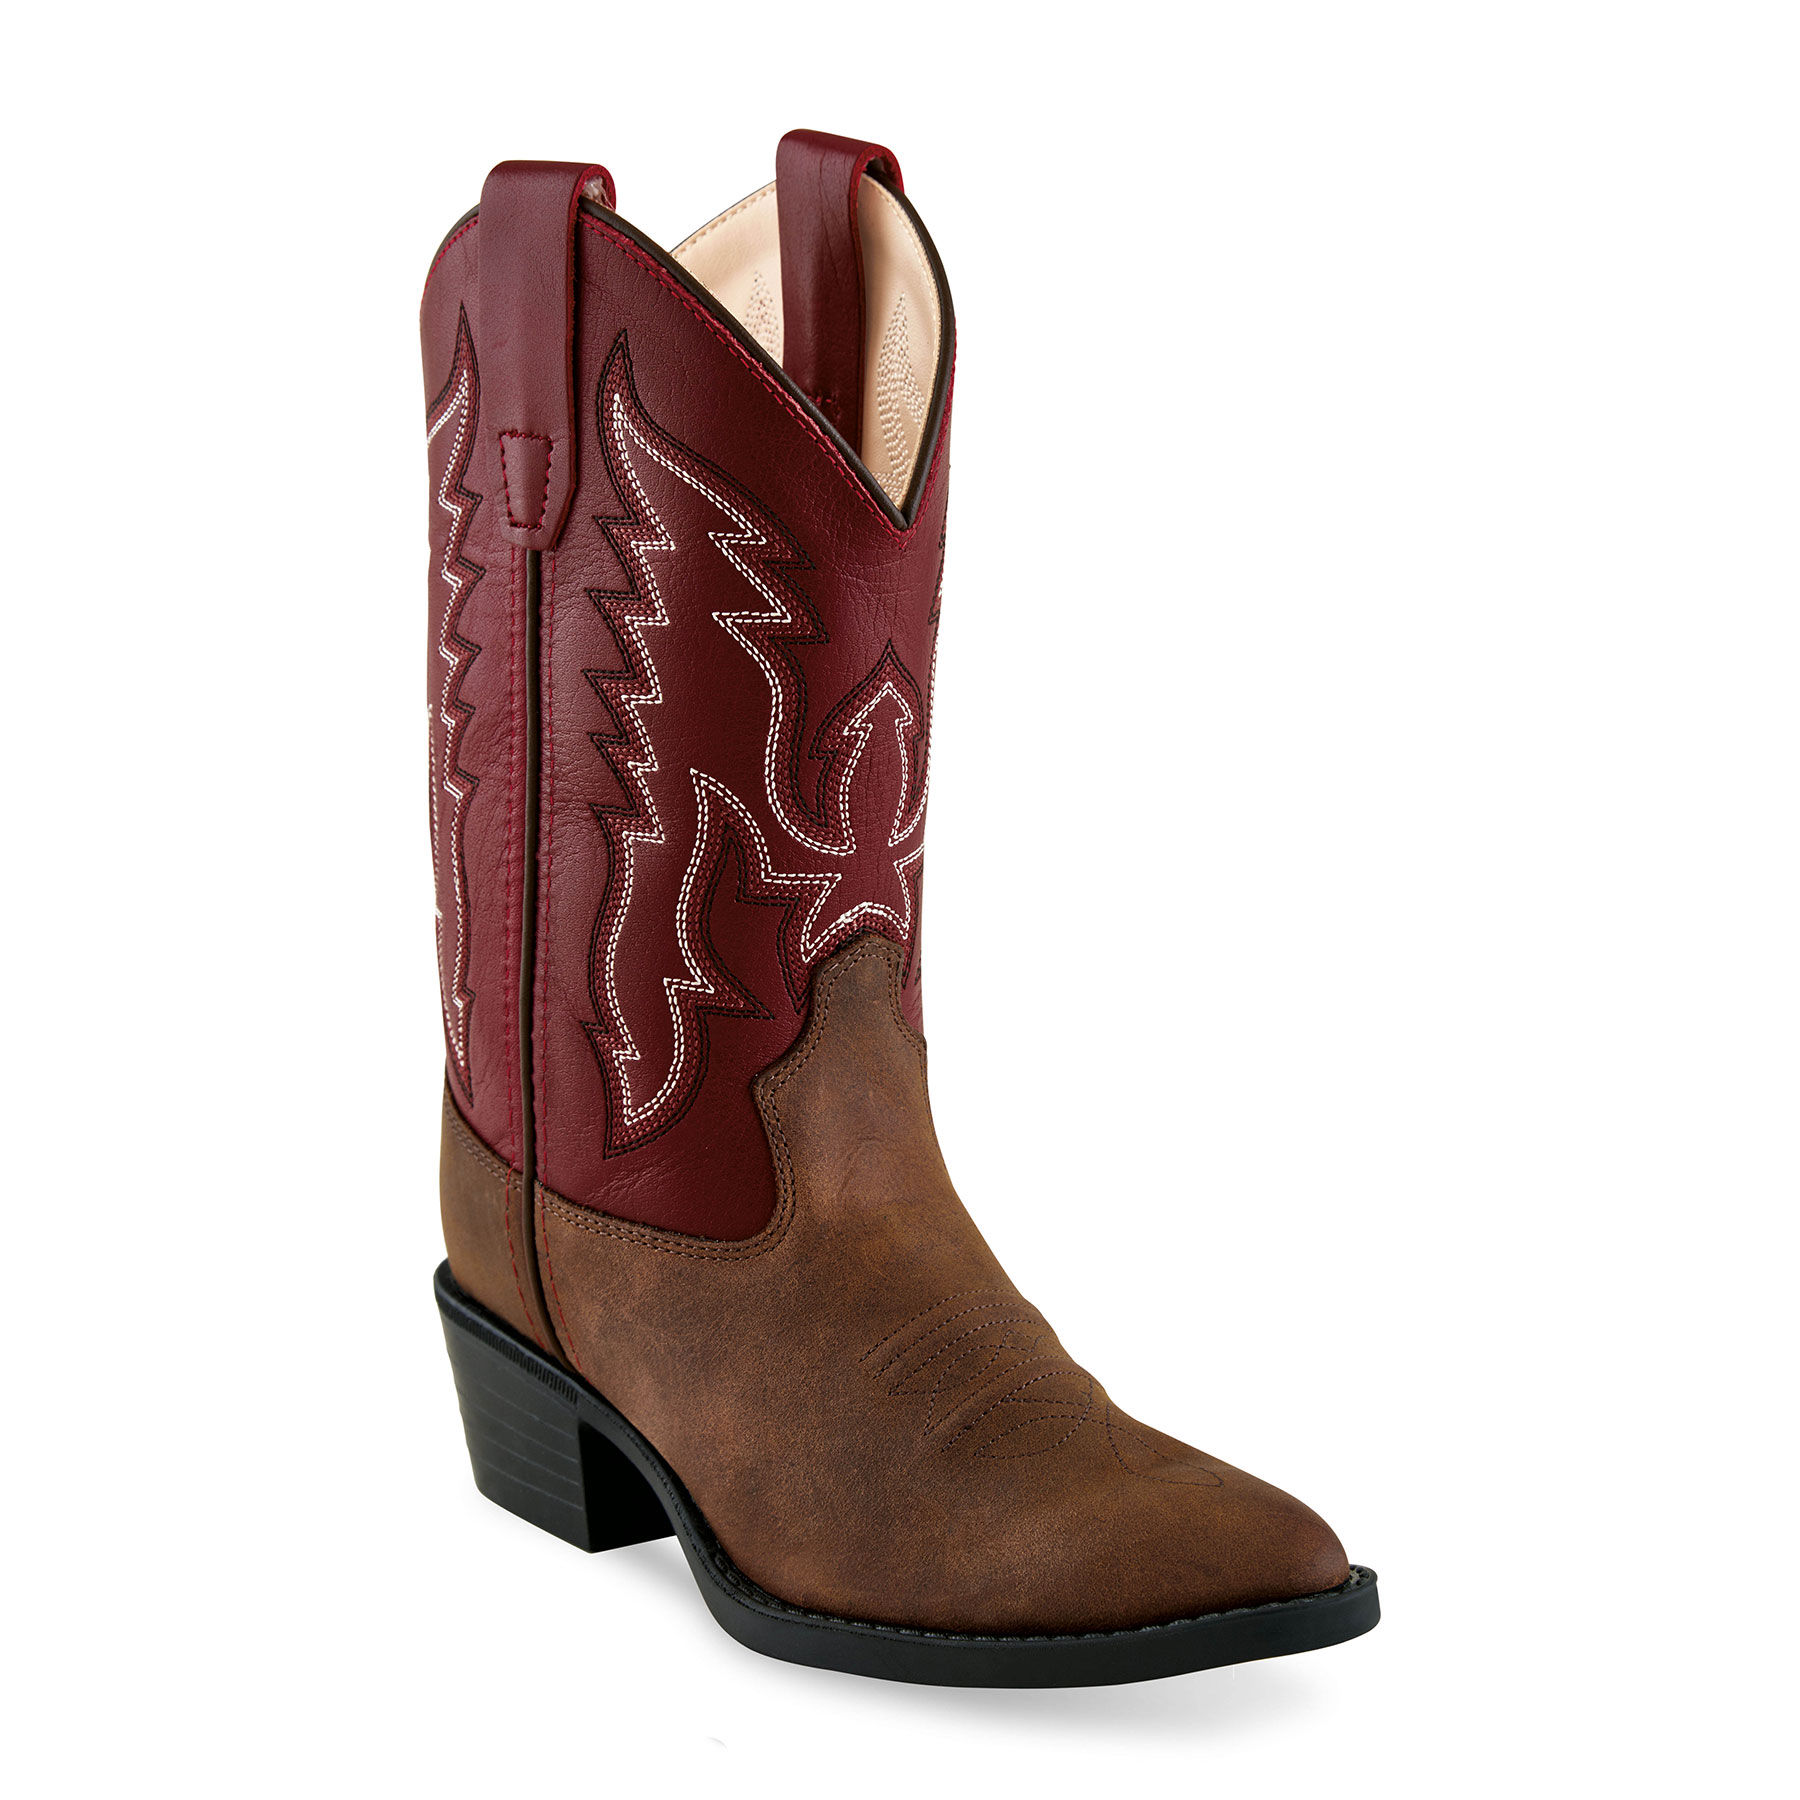 f1a564c8773 Old West Youth's J Toe Western Boots - Brown/Red